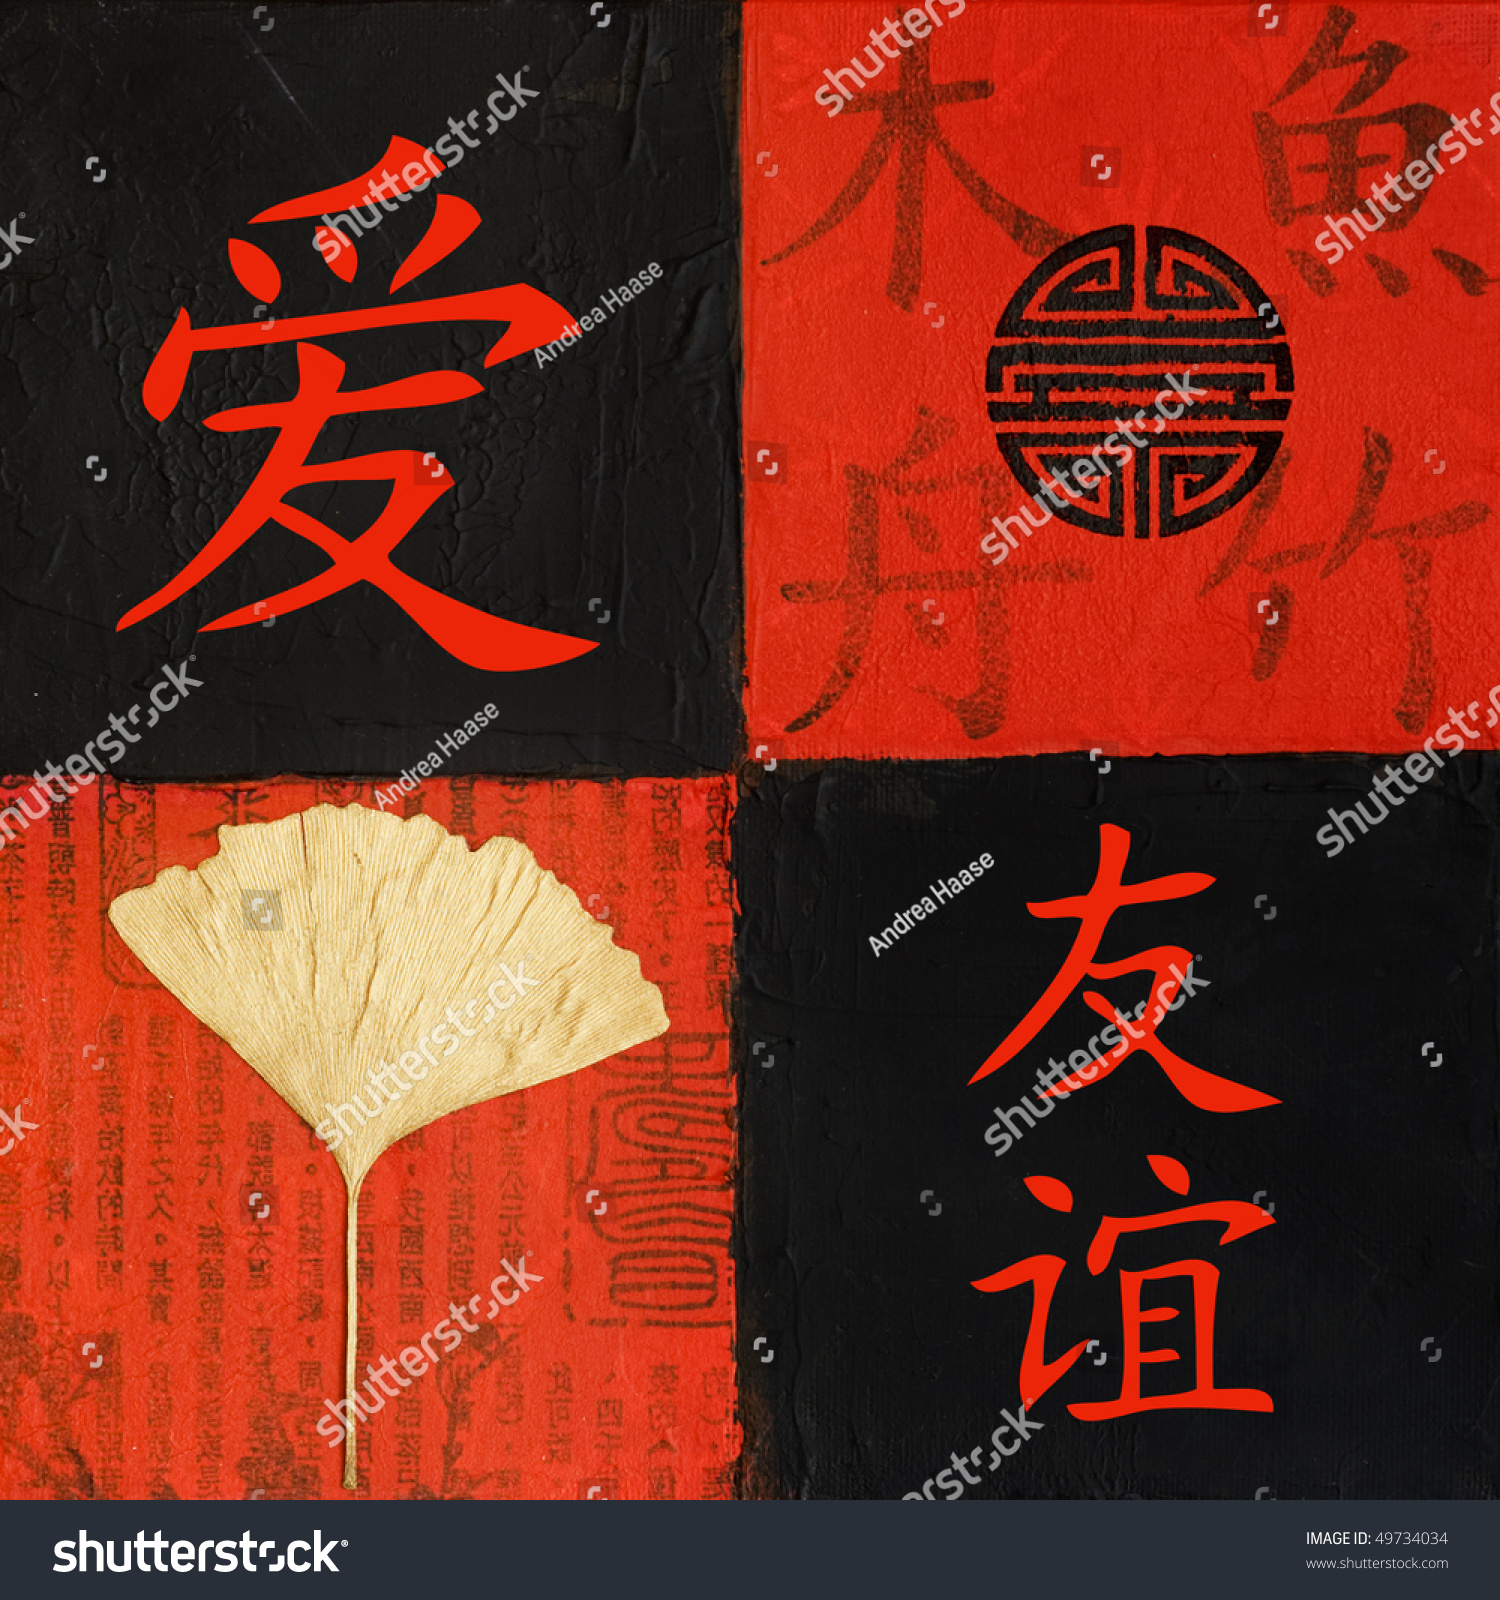 Illustration Chinese Symbol Love Friendship Artwork Stock Photo